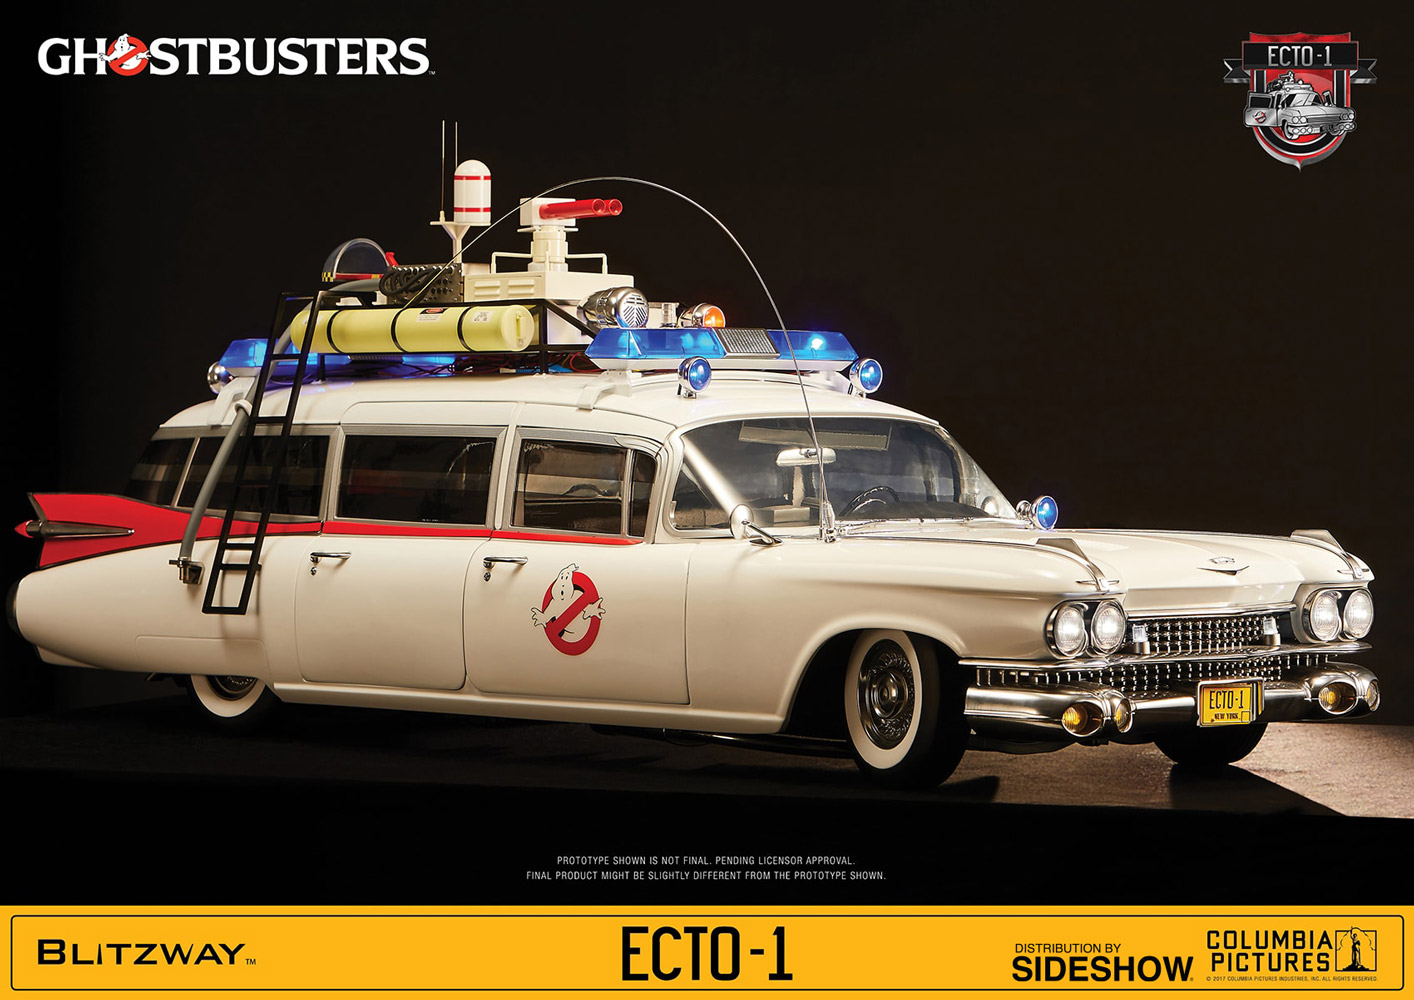 ghostbusters ecto 1 ghostbusters 1984 sixth scale figure. Black Bedroom Furniture Sets. Home Design Ideas